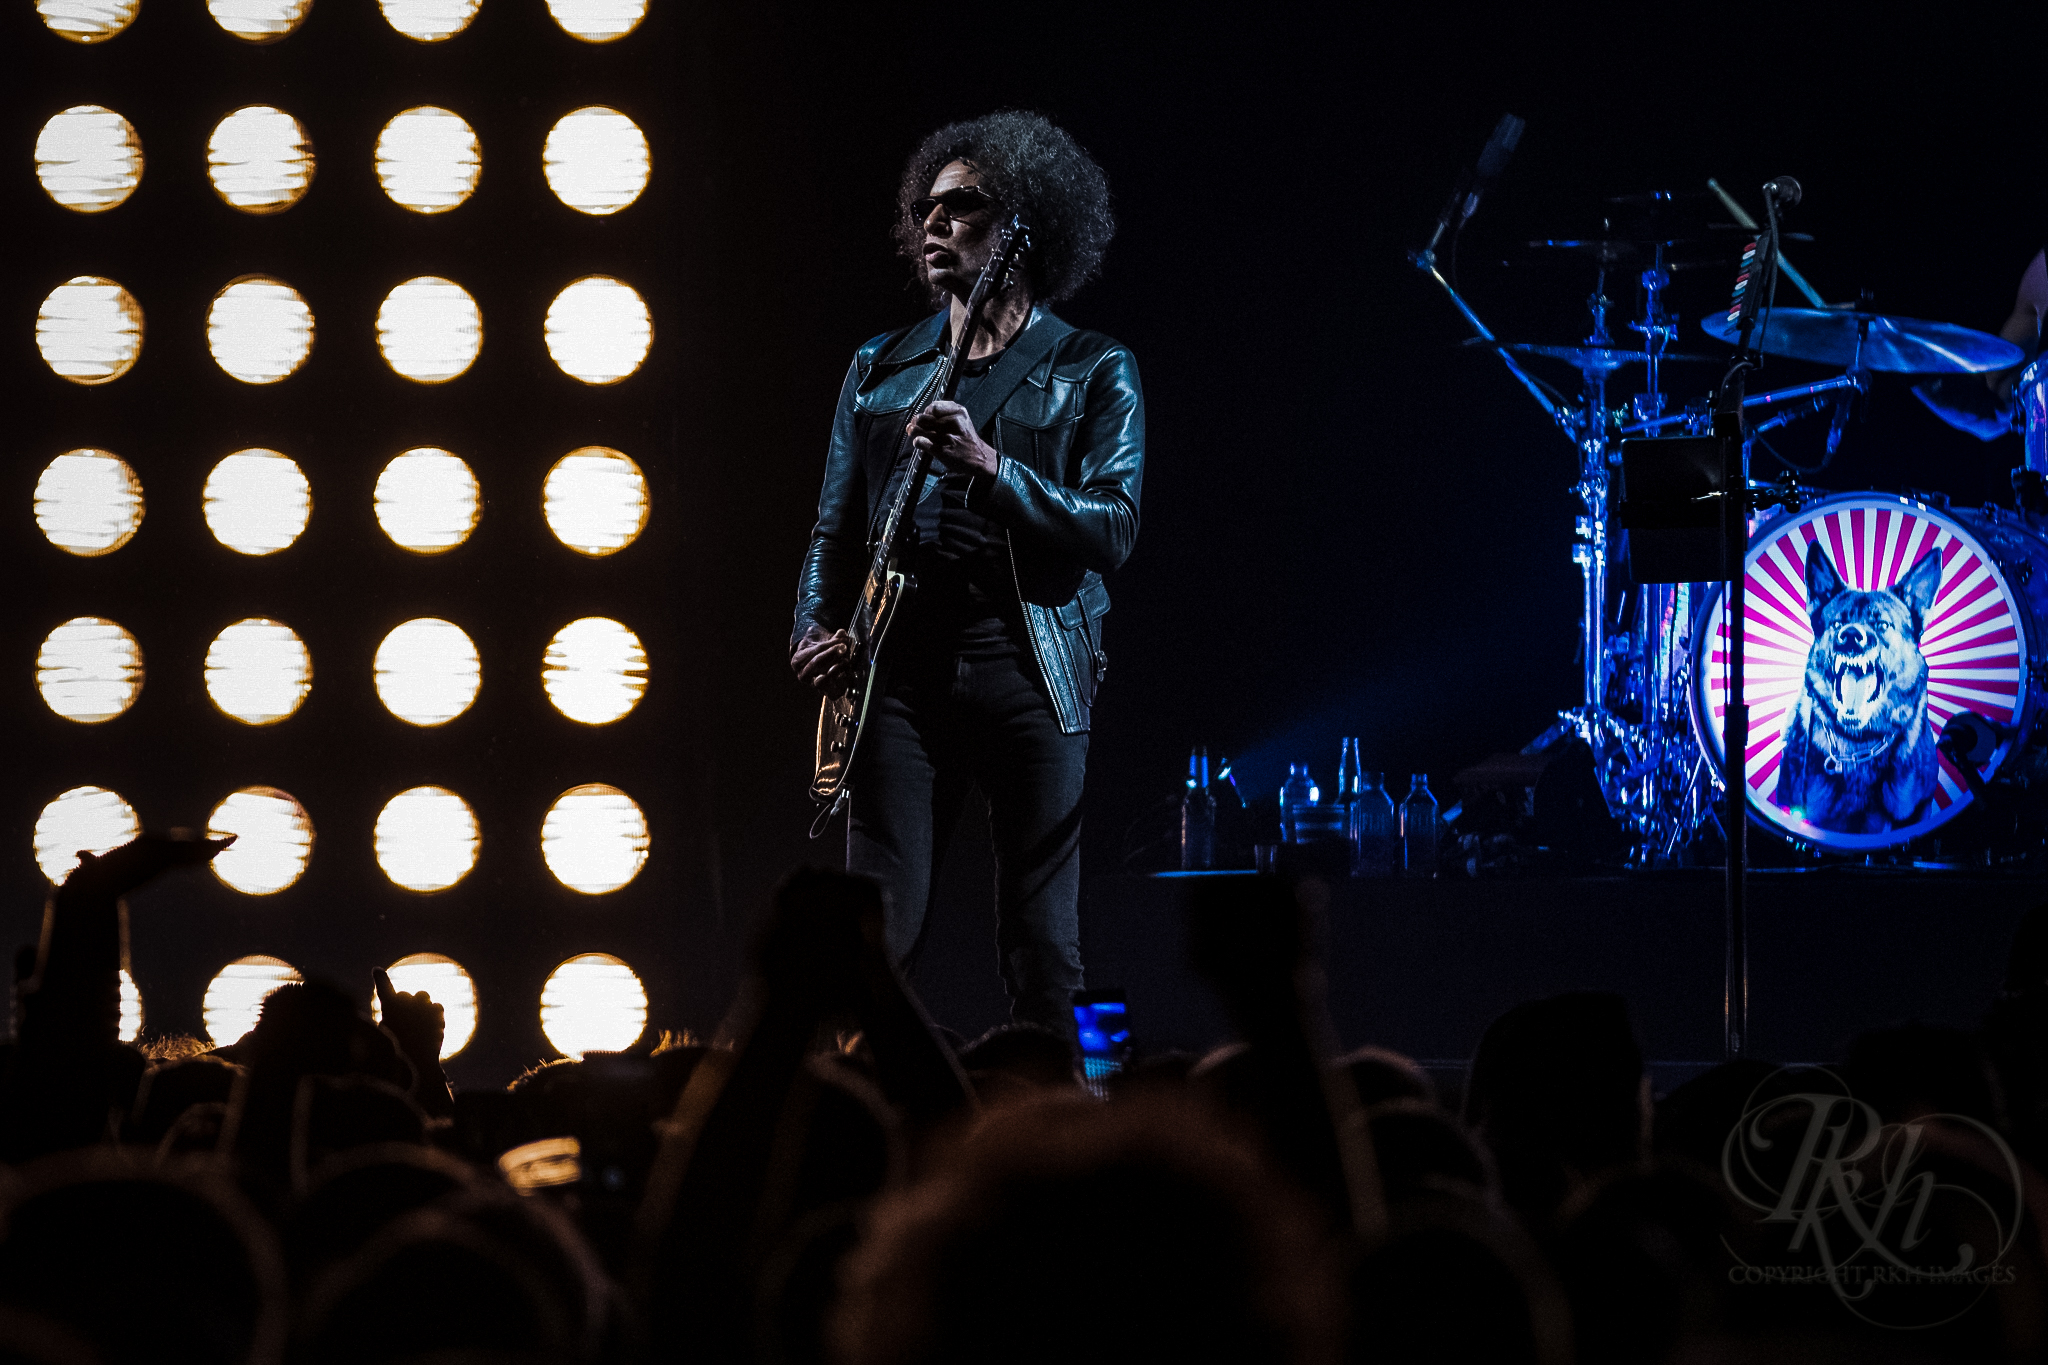 Alice in Chains - RKH Images - The Armory - Minneapolis, Minnesota  (8 of 15).jpg